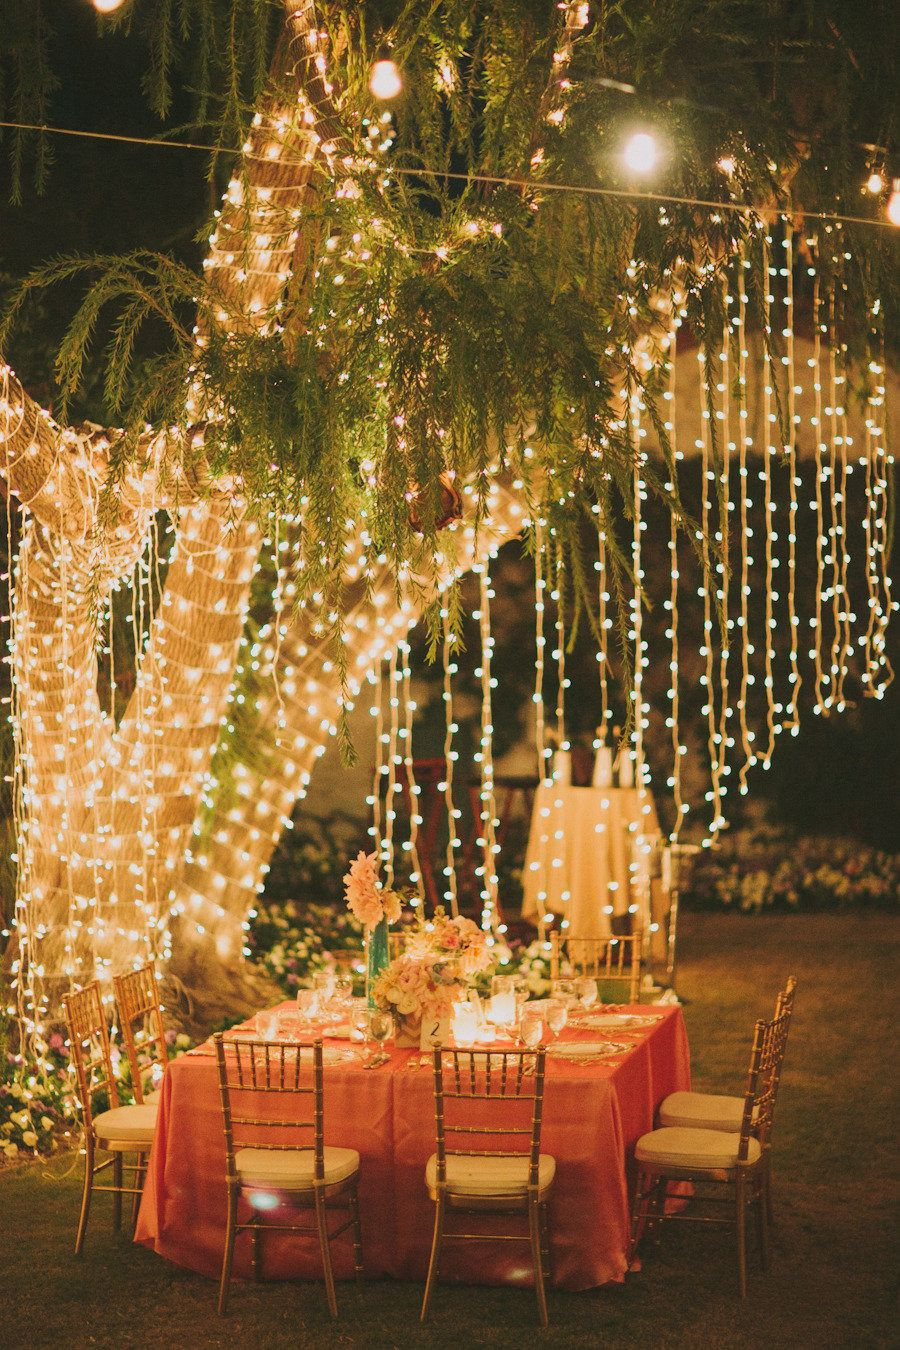 unusual outdoor lighting photo 9. I Really Can\u0027t Decide Between An Indoor Our Outdoor Wedding, But The Thought Of Lights Dripping Down From Trees Is Beyond Romantic Unusual Lighting Photo 9